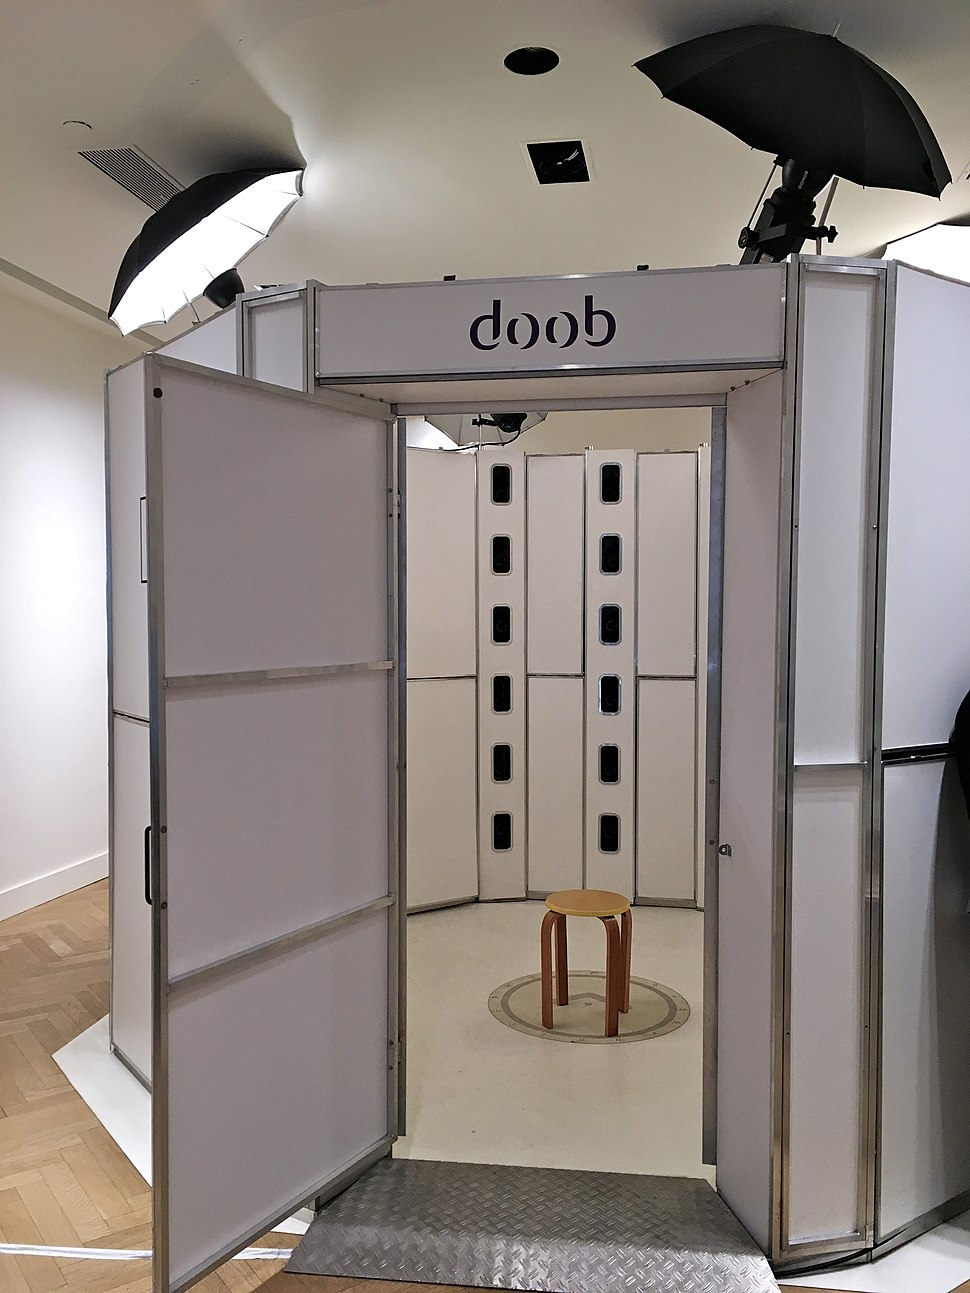 Doob NY SOHO 3D selfie photo booth IMG 4939 FRD